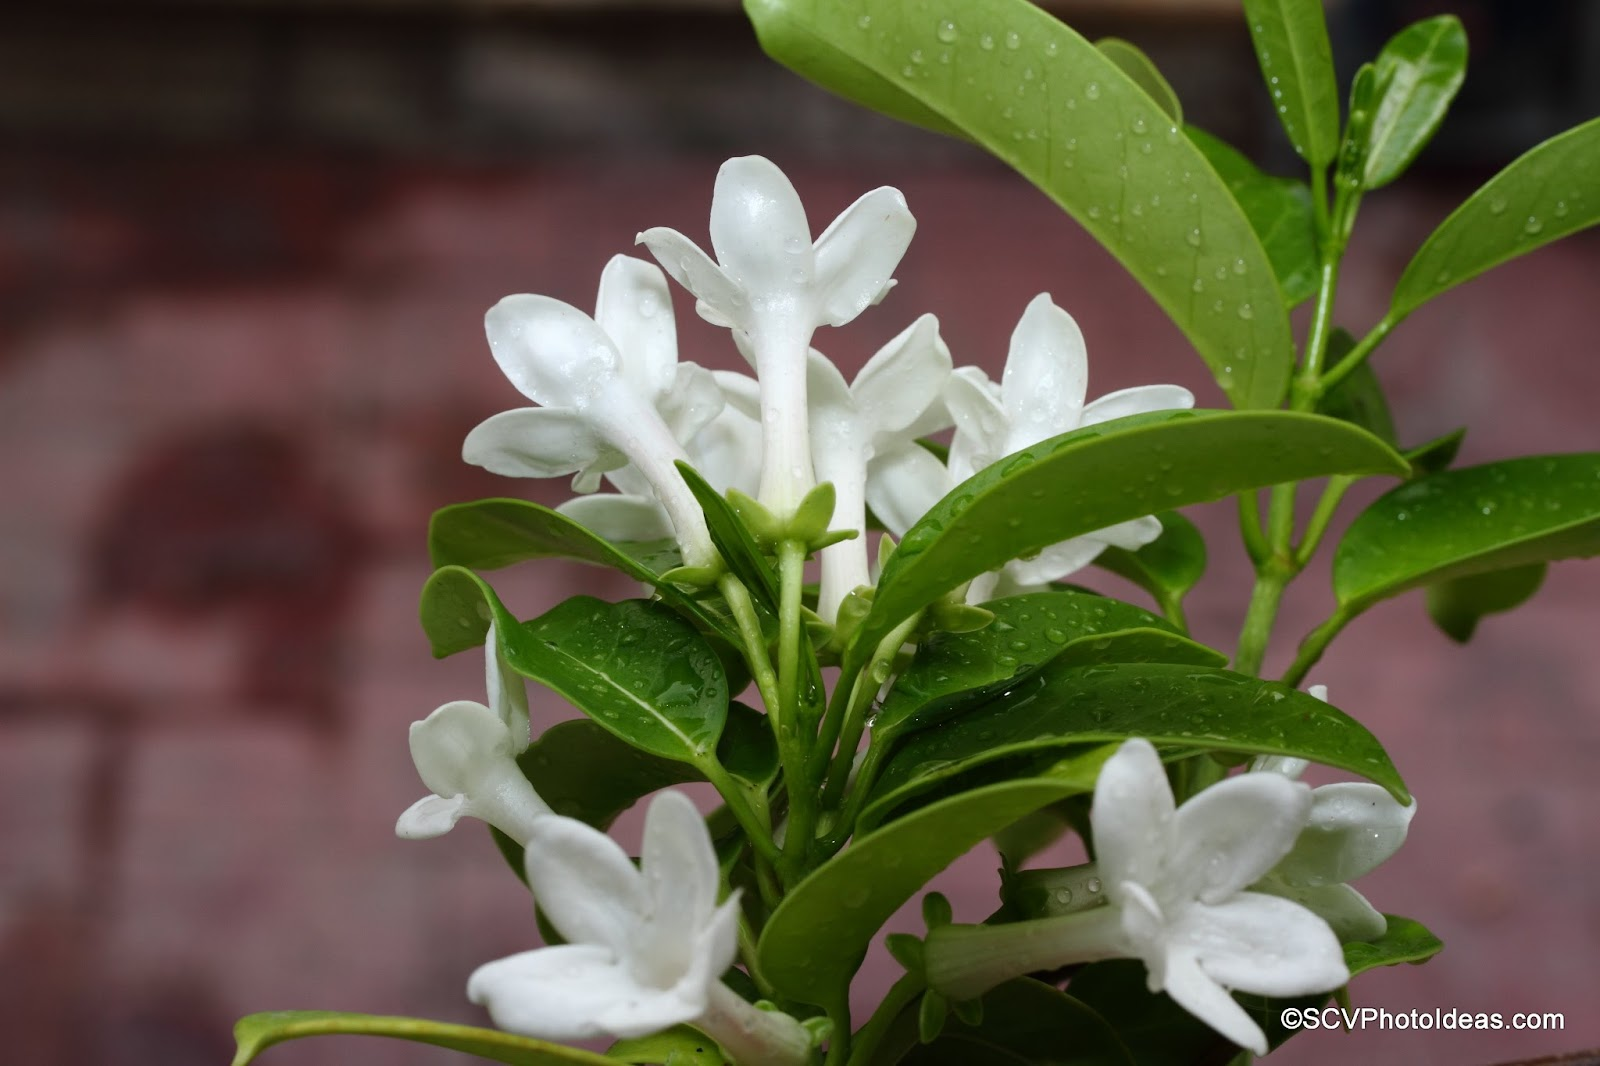 Stephanotis floribunda (Madagascar jasmine) showered open flowers bunch